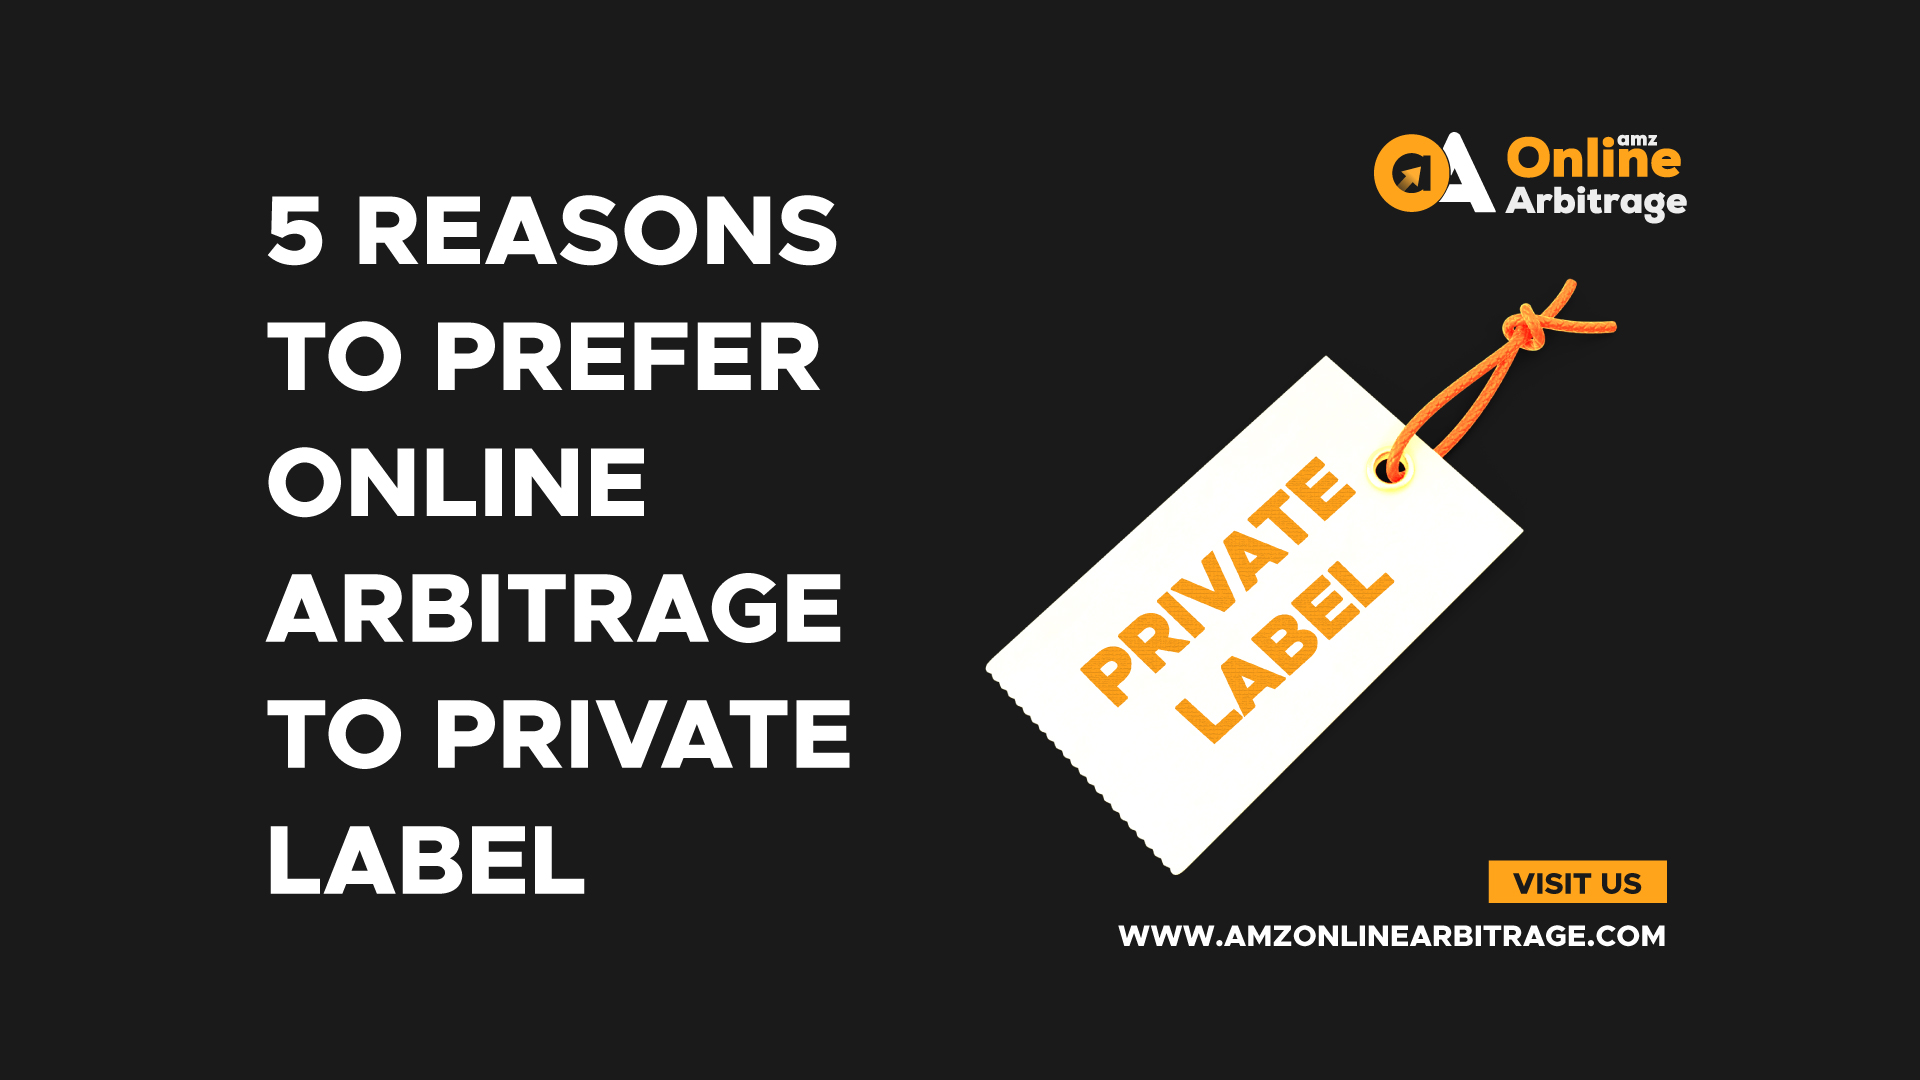 5 REASONS TO PREFER ONLINE ARBITRAGE TO PRIVATE LABEL